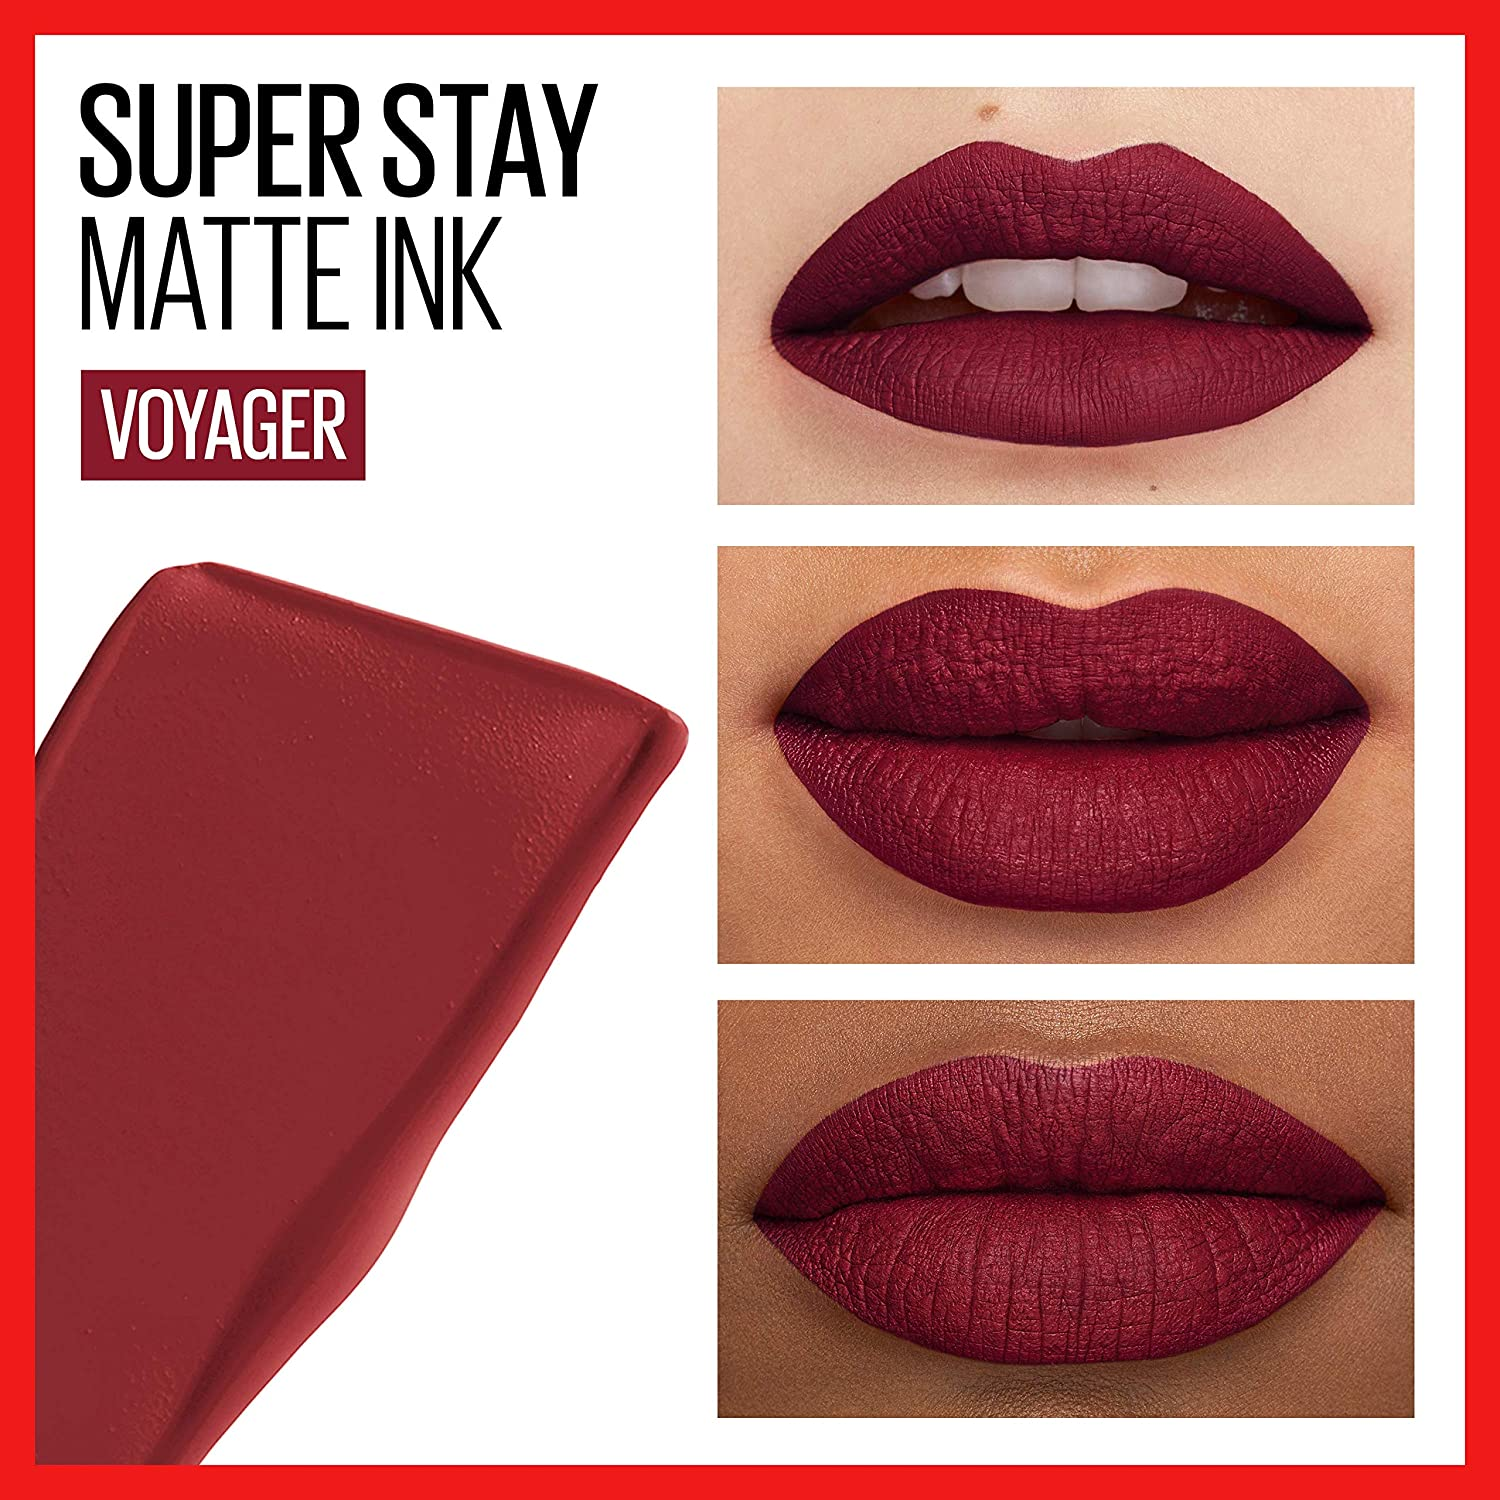 Check out 10 Must-Have Lipstick Colors For Fall | Number 5 Is Gorgeous! at https://makeuptutorials.com/fall-lipstick-colors/